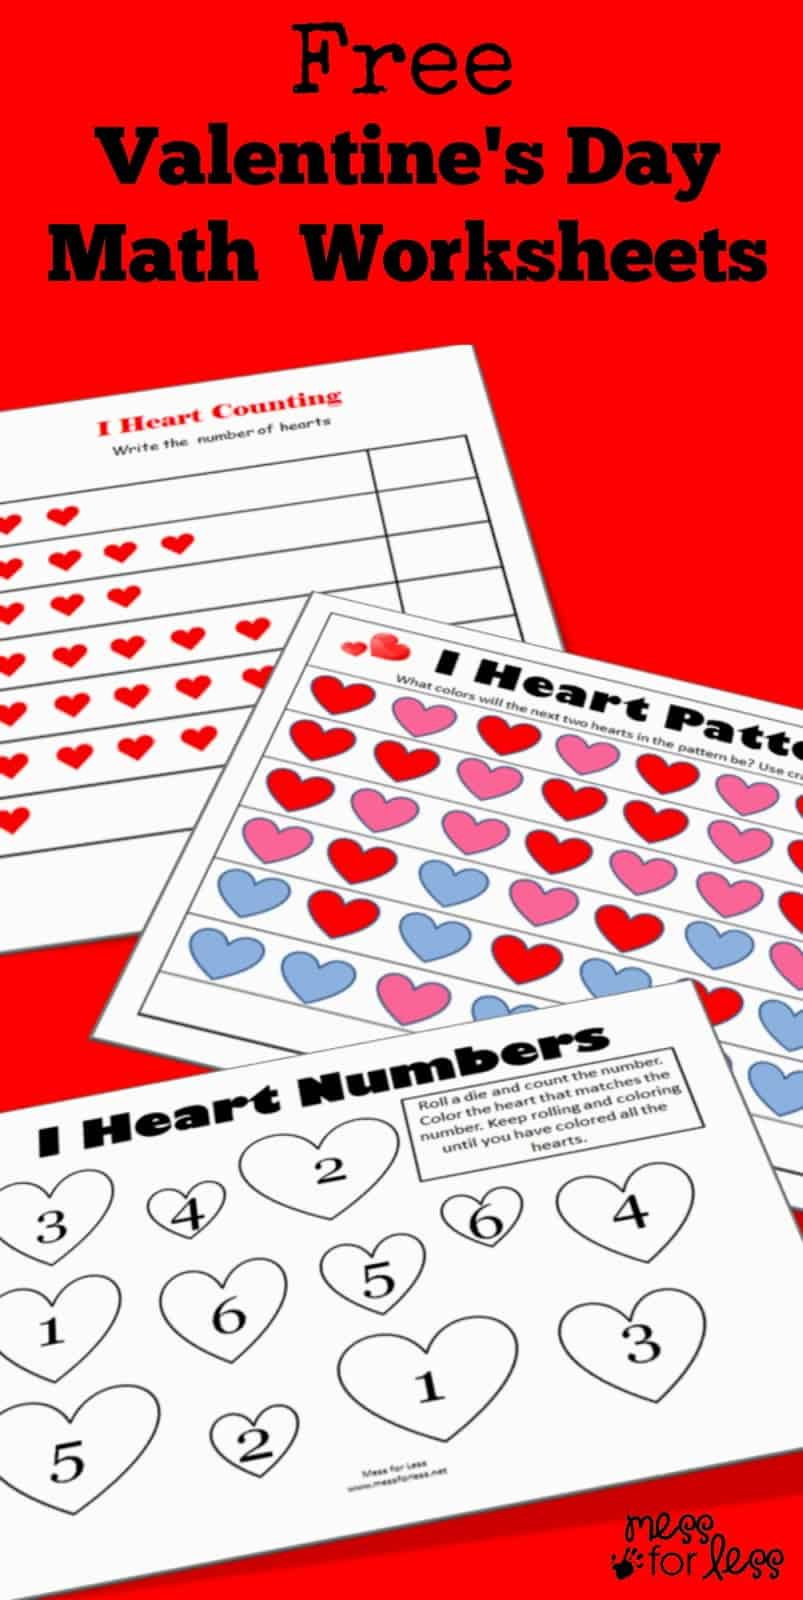 math worksheet : valentine s math  kindergarten worksheets  mess for less : Free Valentine Worksheets For Kindergarten